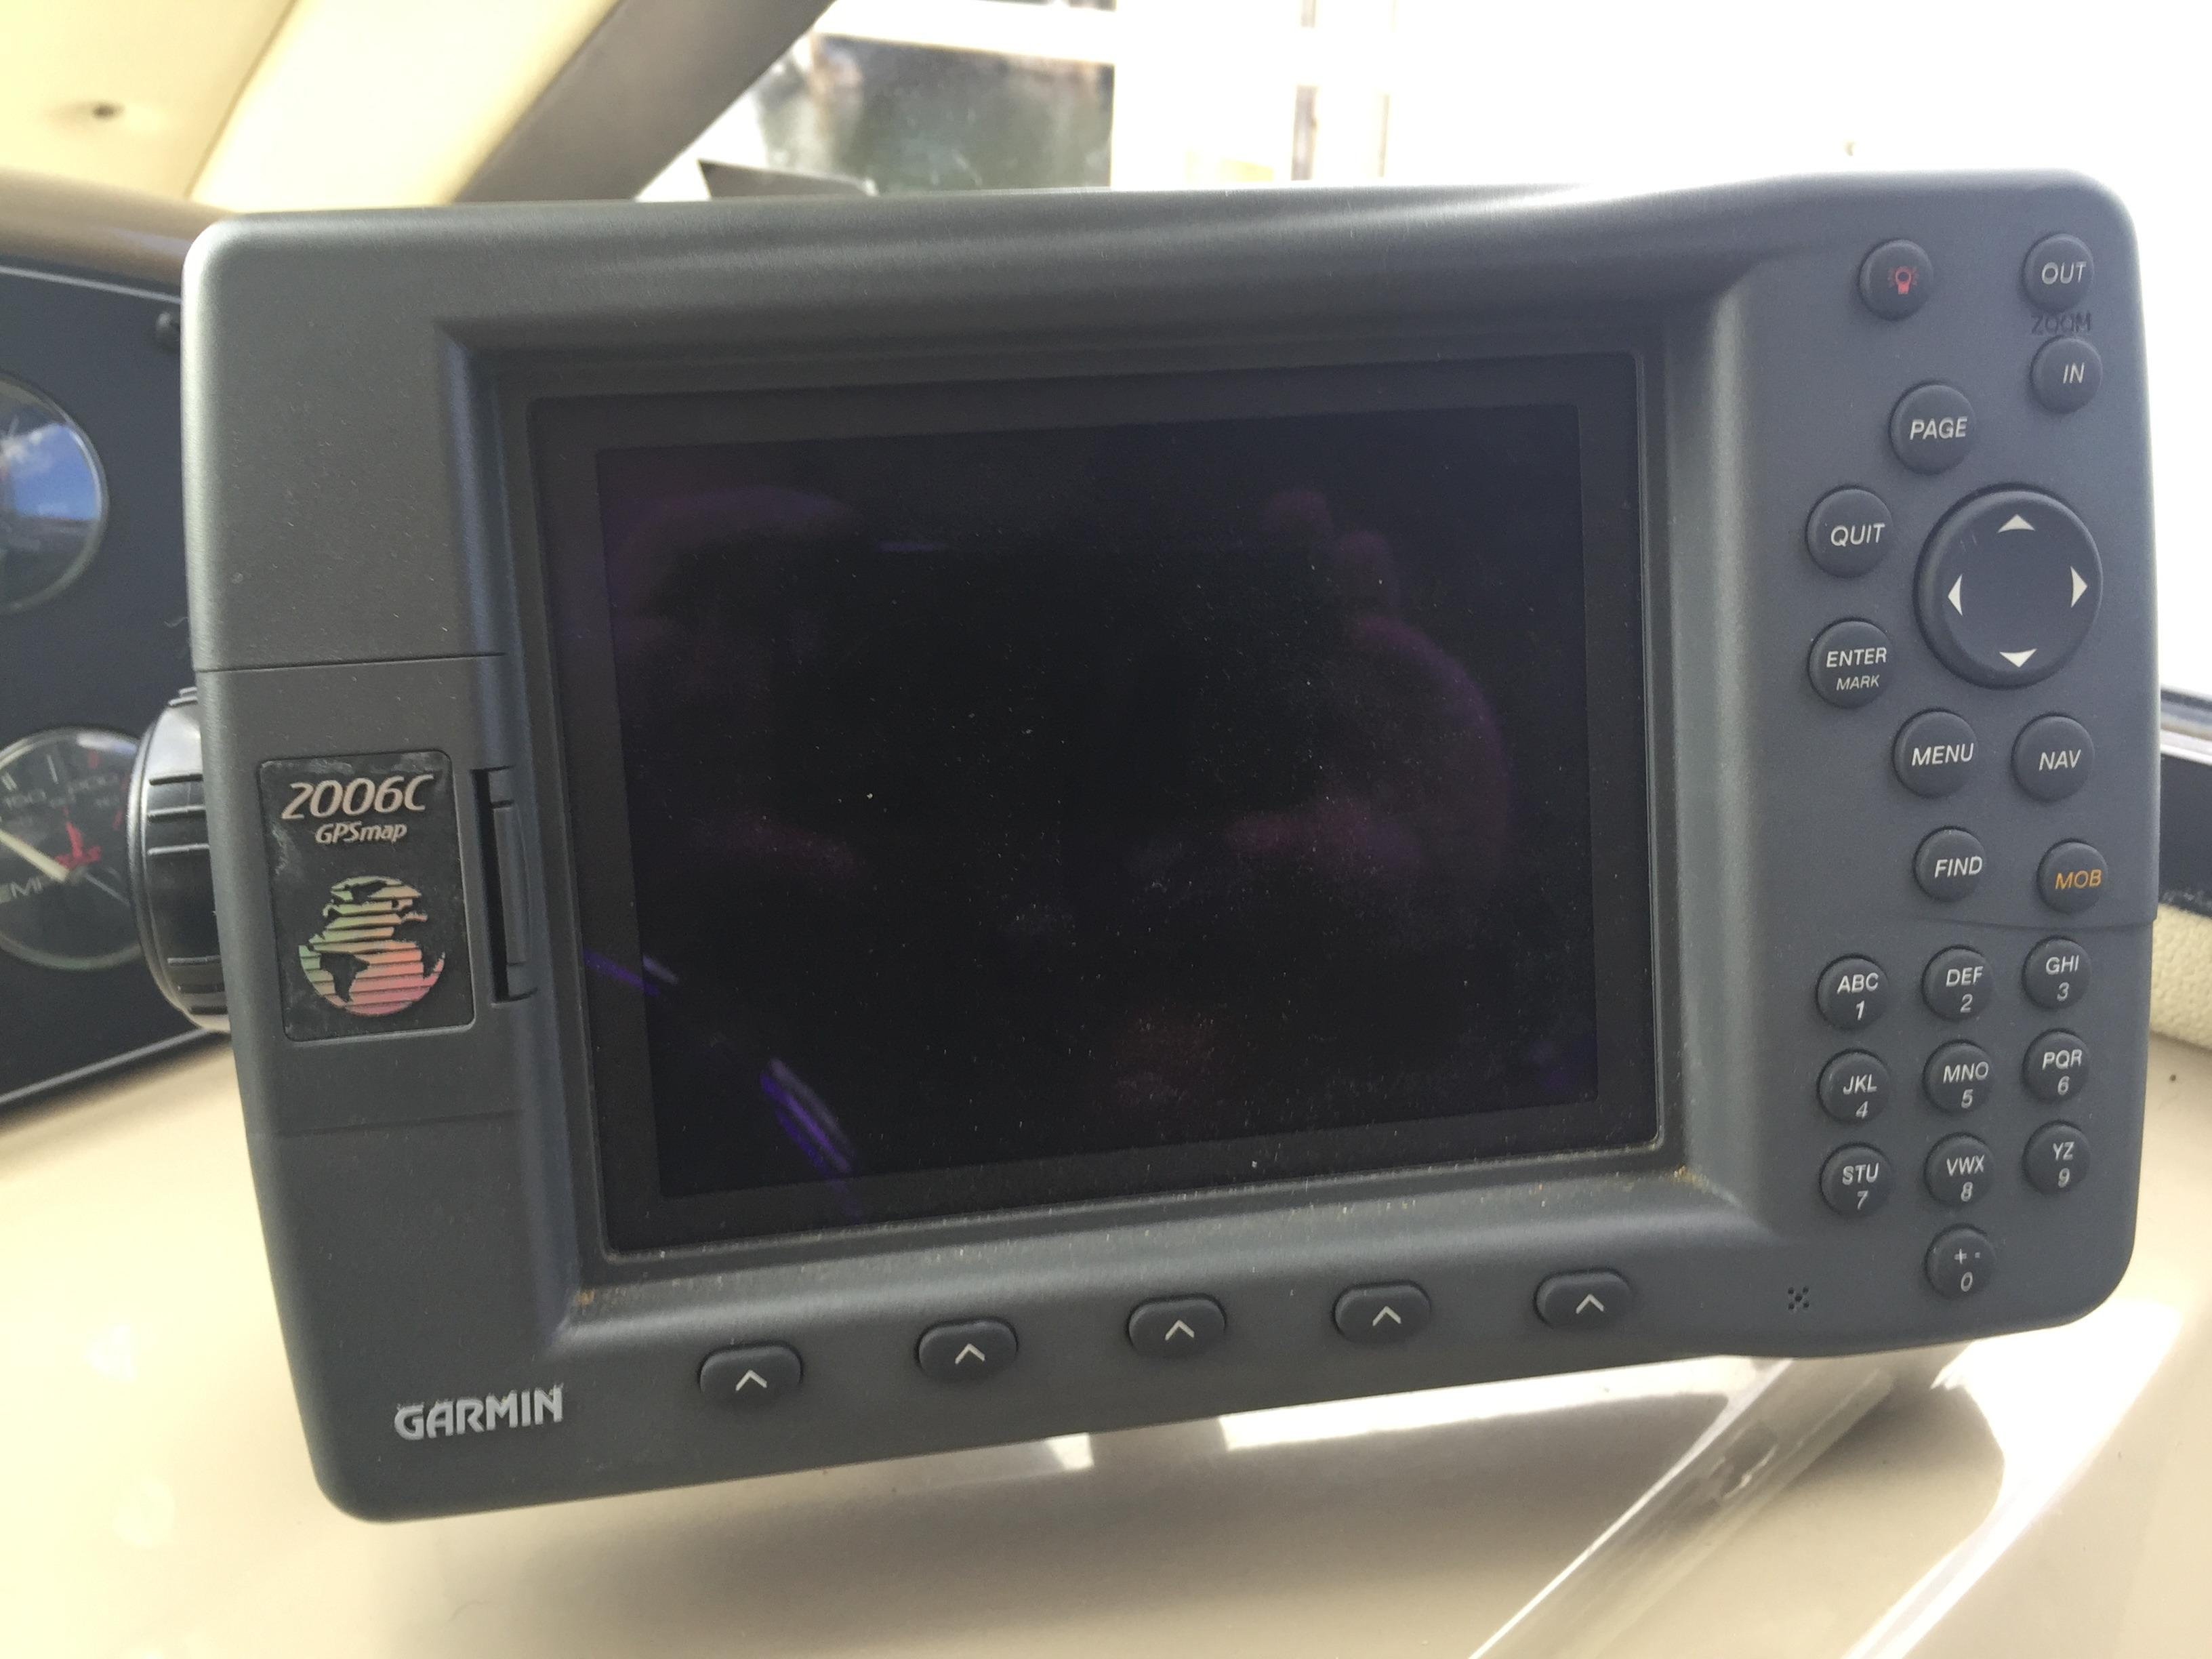 Garmin 2006c Wiring Diagram 27 Images Lowrance X135 Power Cable Gps Diagrams 5872154 20160713185626843 1 Xlargew924h693t1468465158000